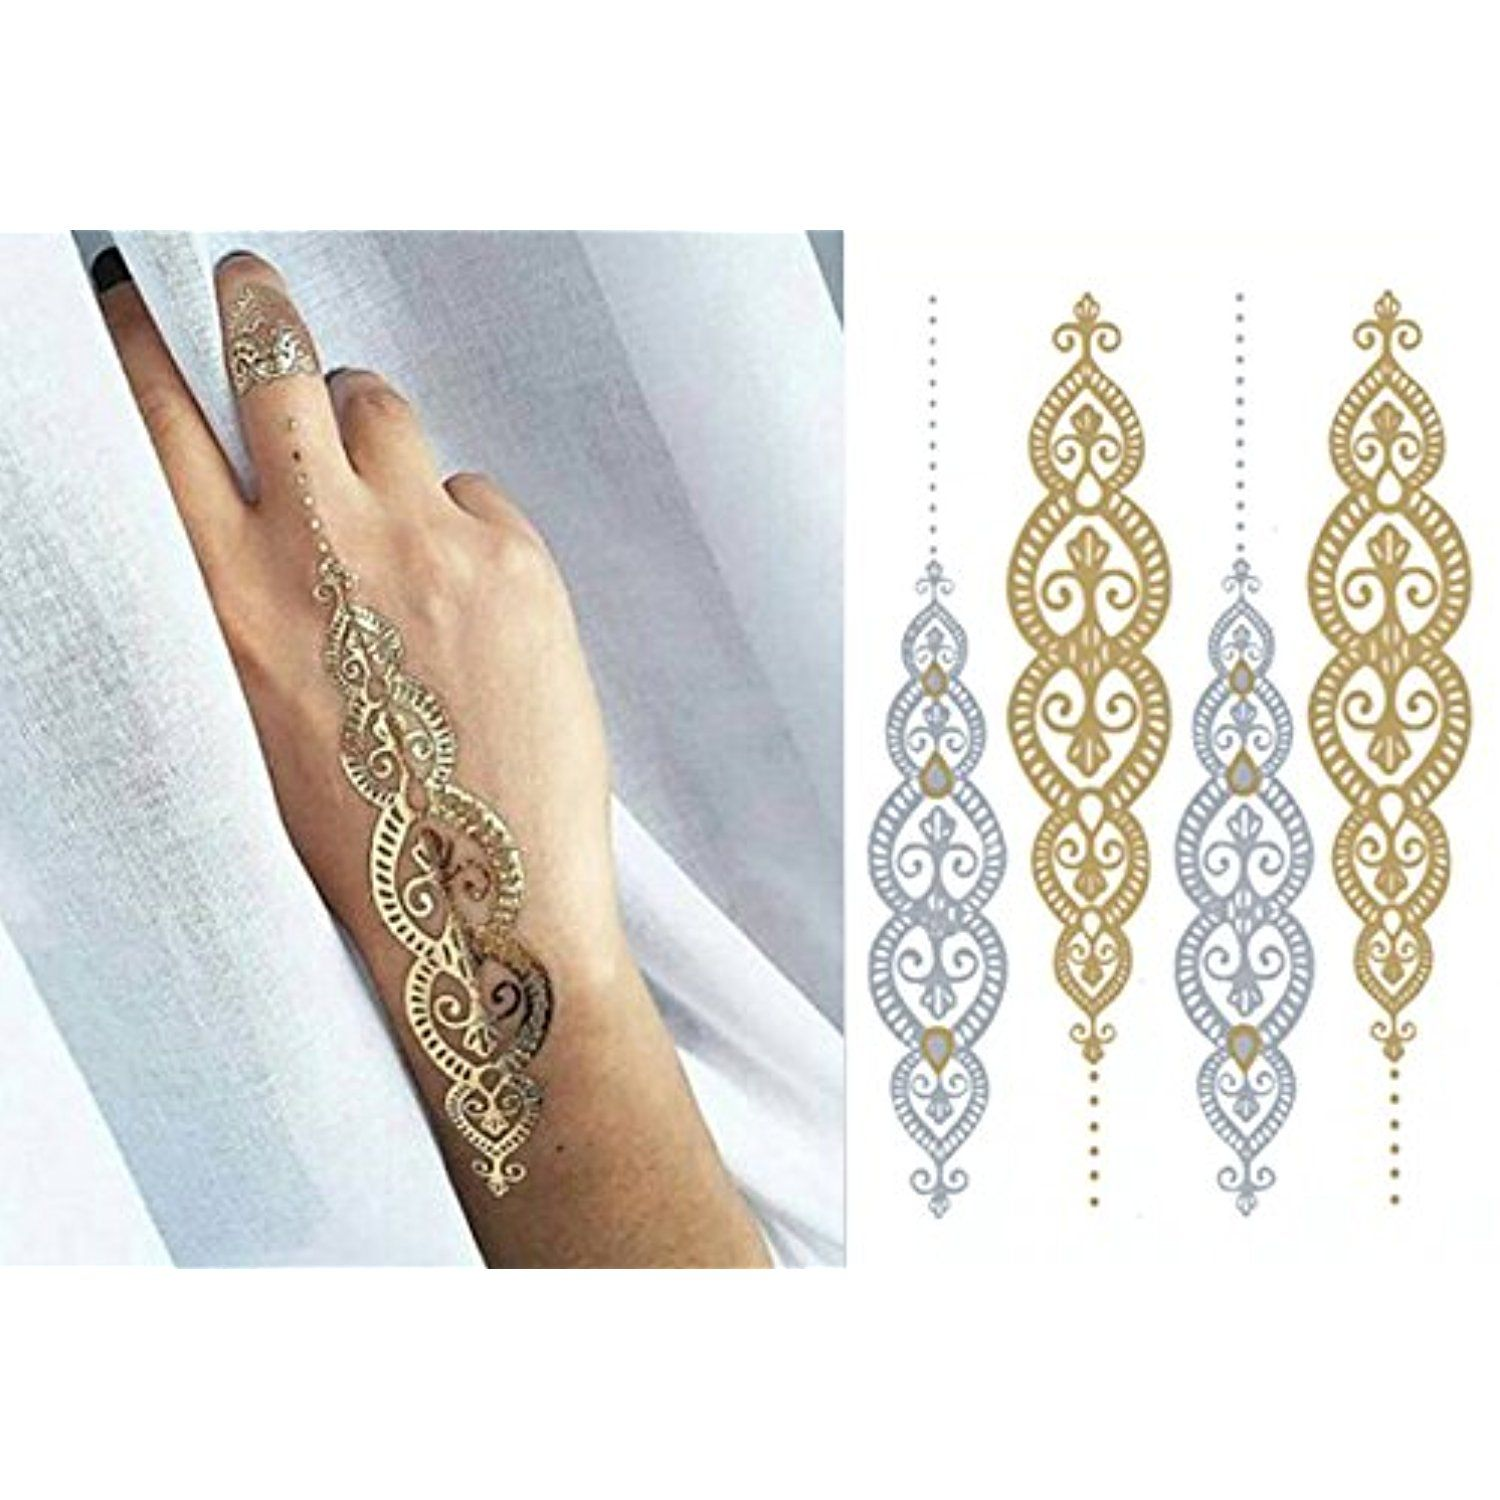 Golden Metallic Gold Body Art Temporary Removable Tattoo Stickers Golden Pattern Tatt1243 Sticker Tattoo Fashiondanci Golden Pattern Body Art Tattoo Stickers